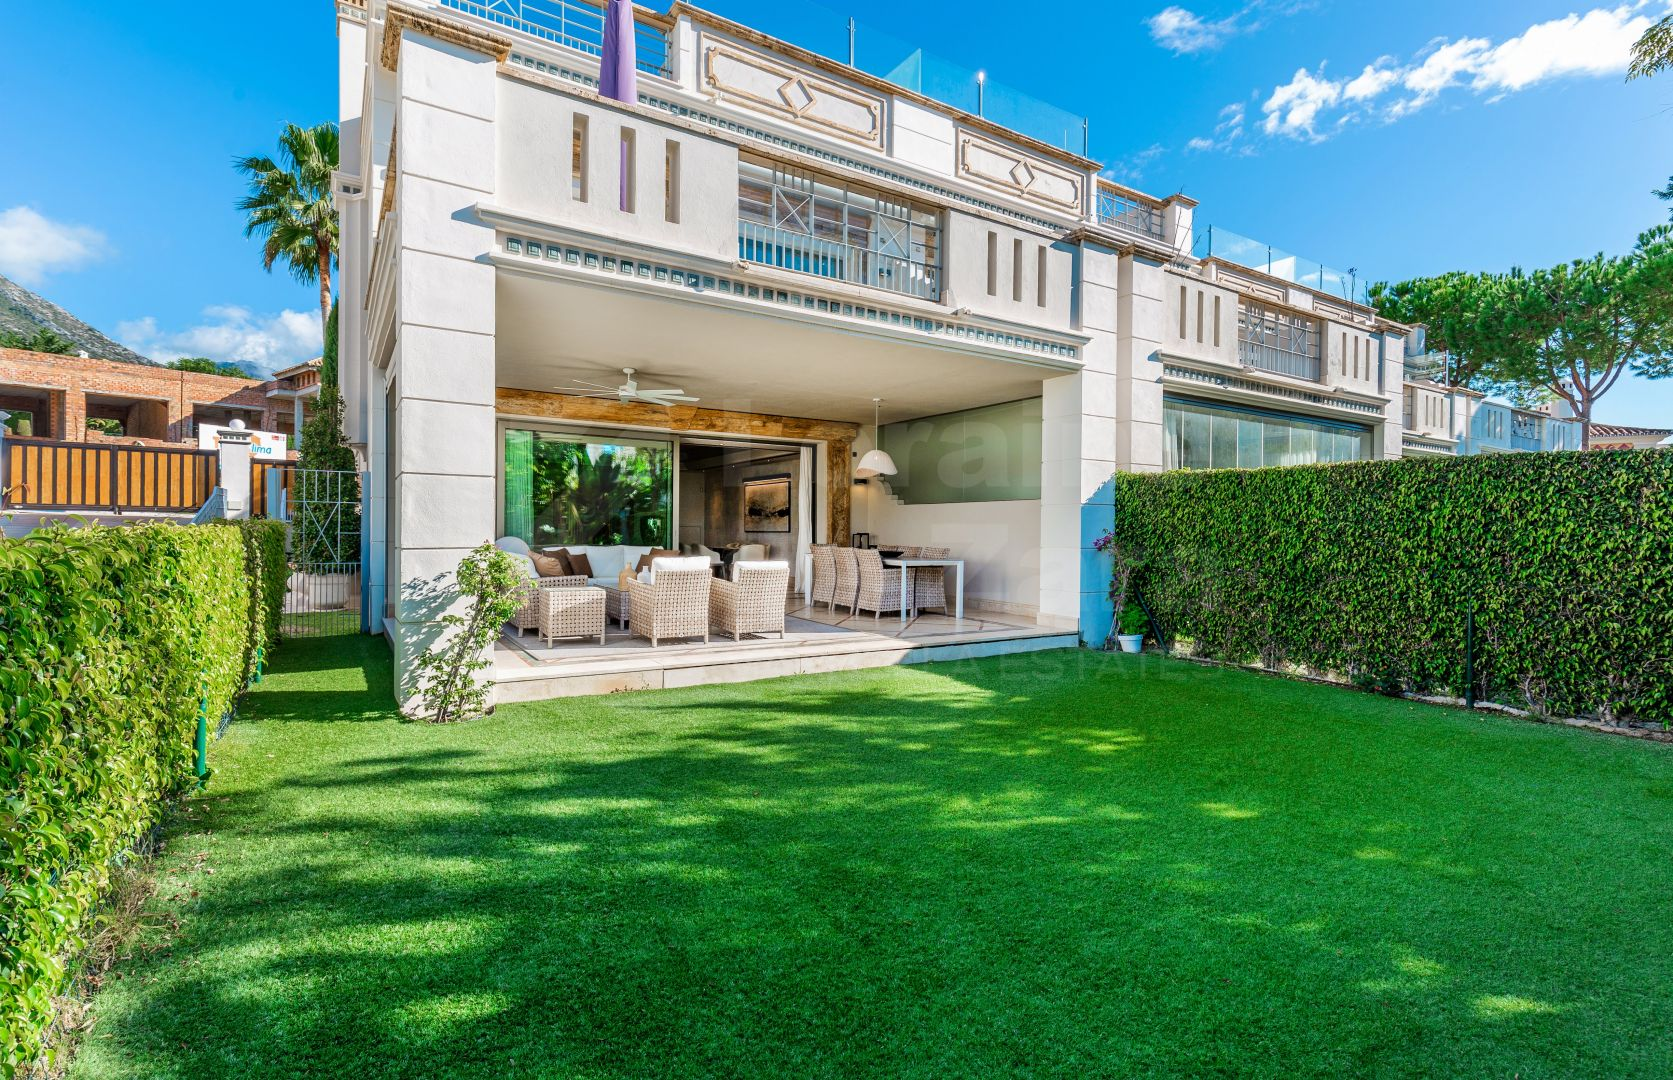 Luxury villa with 5 bedrooms in Sierra Blanca, Marbella